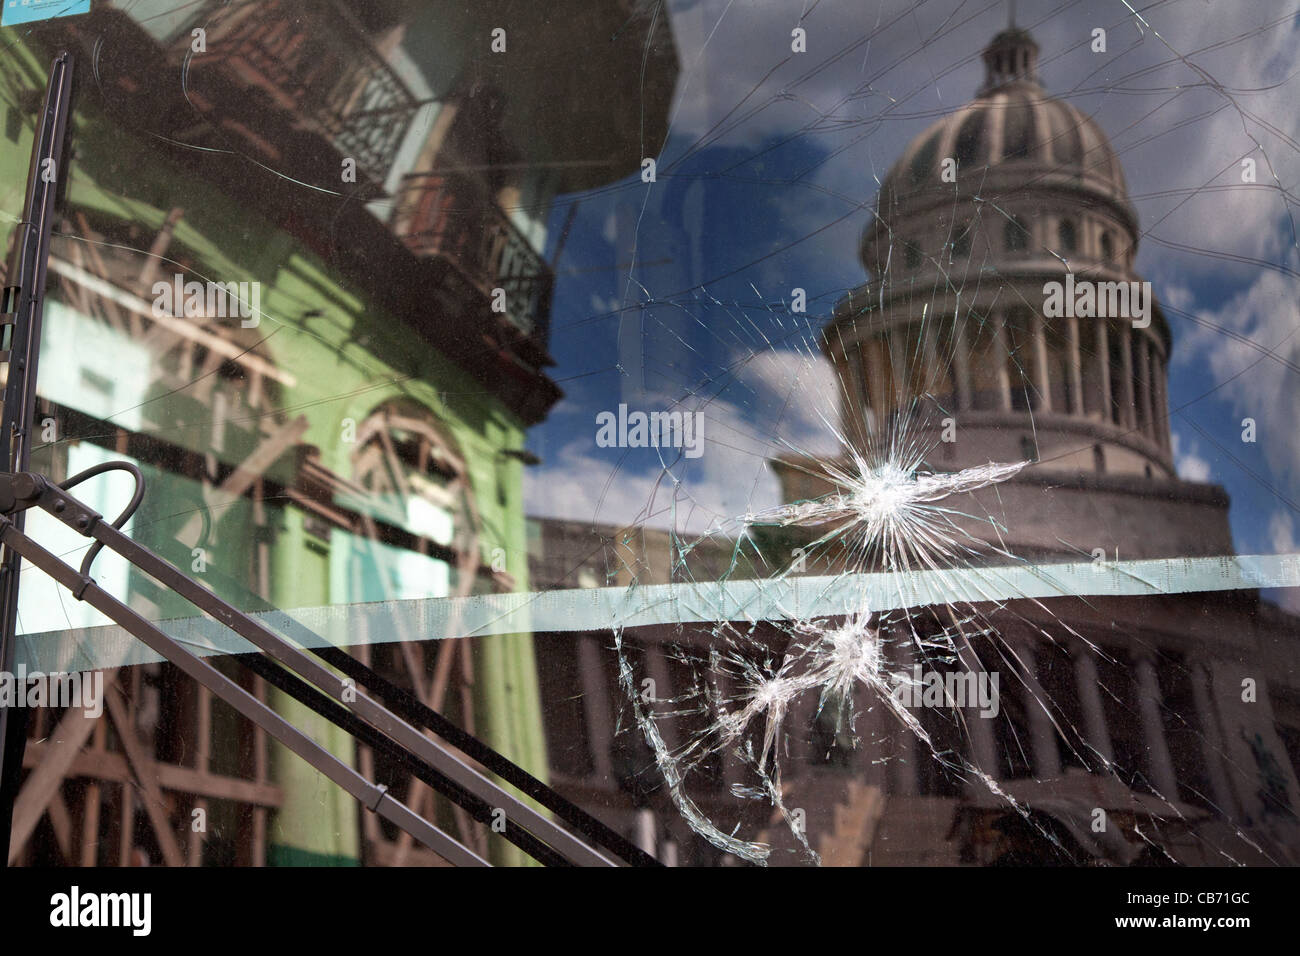 The Capitolio and the buildings of Paseo Marti reflect in a cracked bus window, Havana (La Habana), Cuba - Stock Image